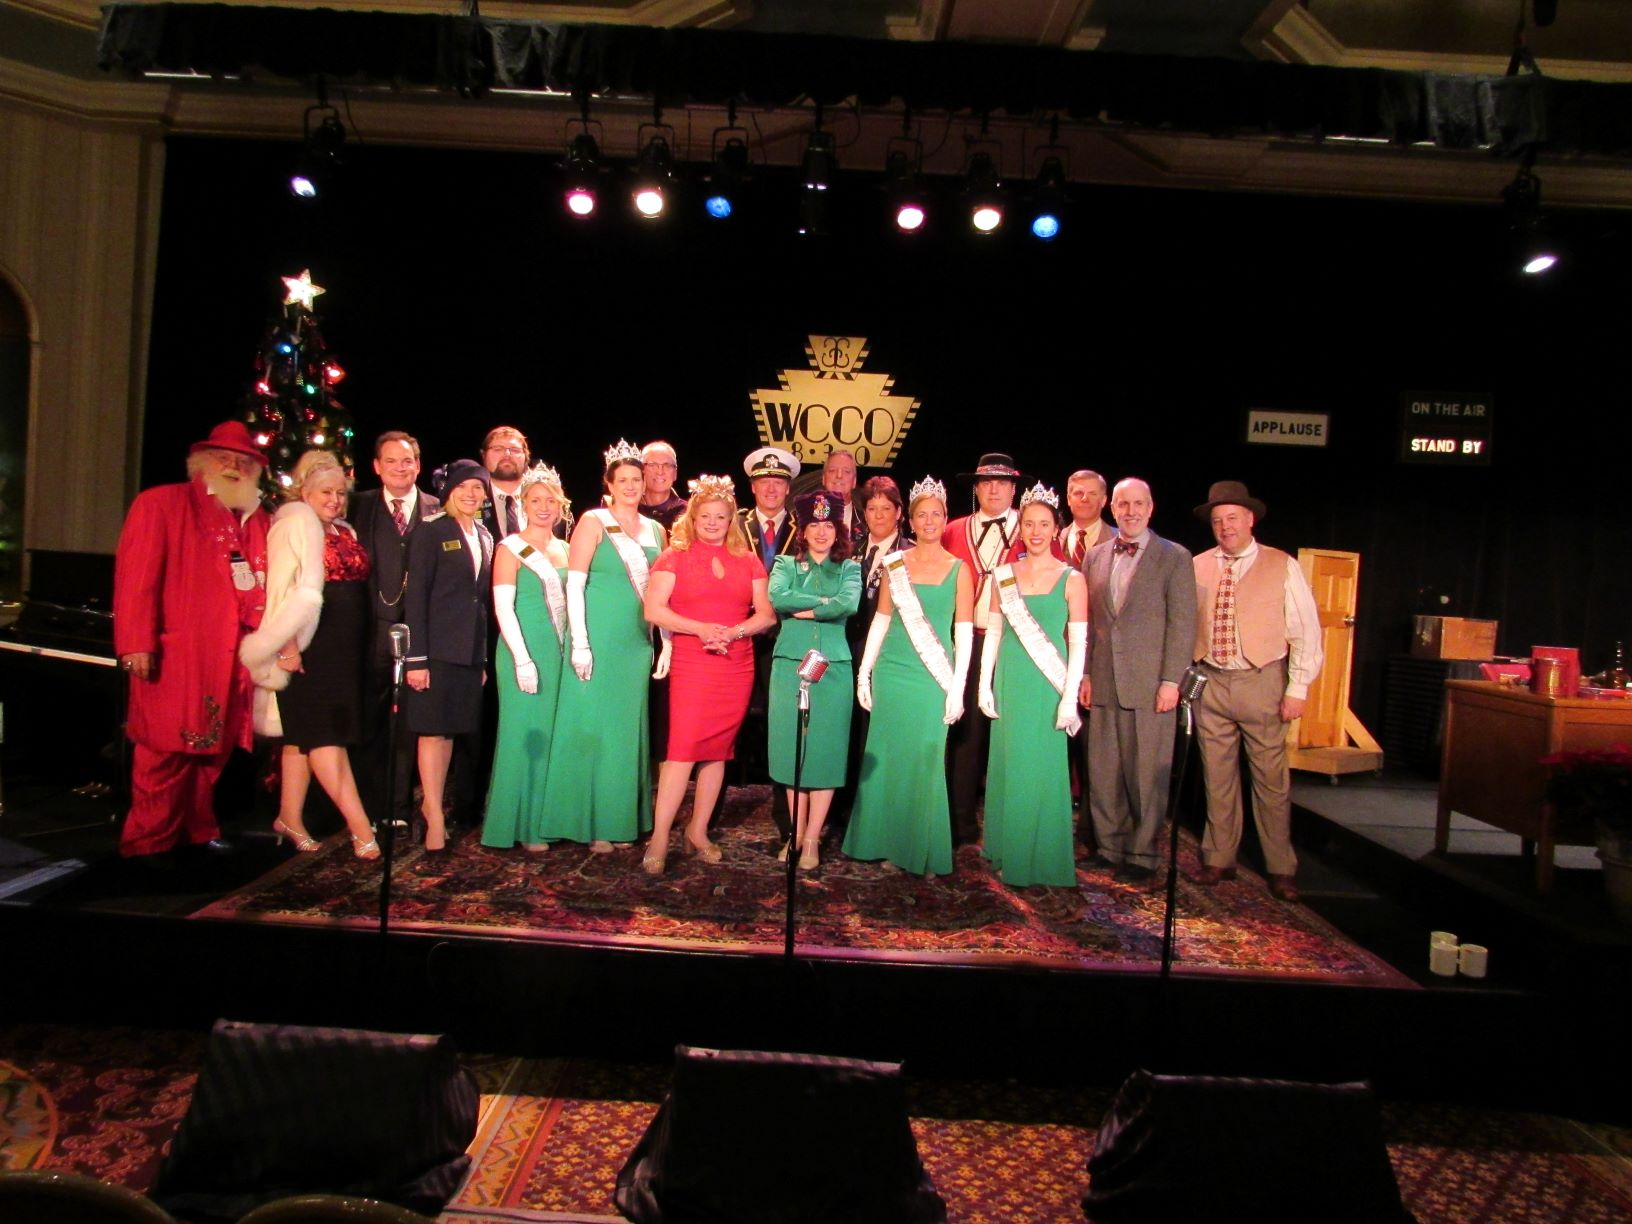 Photo of the cast members of It's A Wonderful Life: A Live Radio Play, St. Paul Winter Carnival Royal Family members and Santa and Mrs. Claus at the Neighbors Benefit Performance Night.